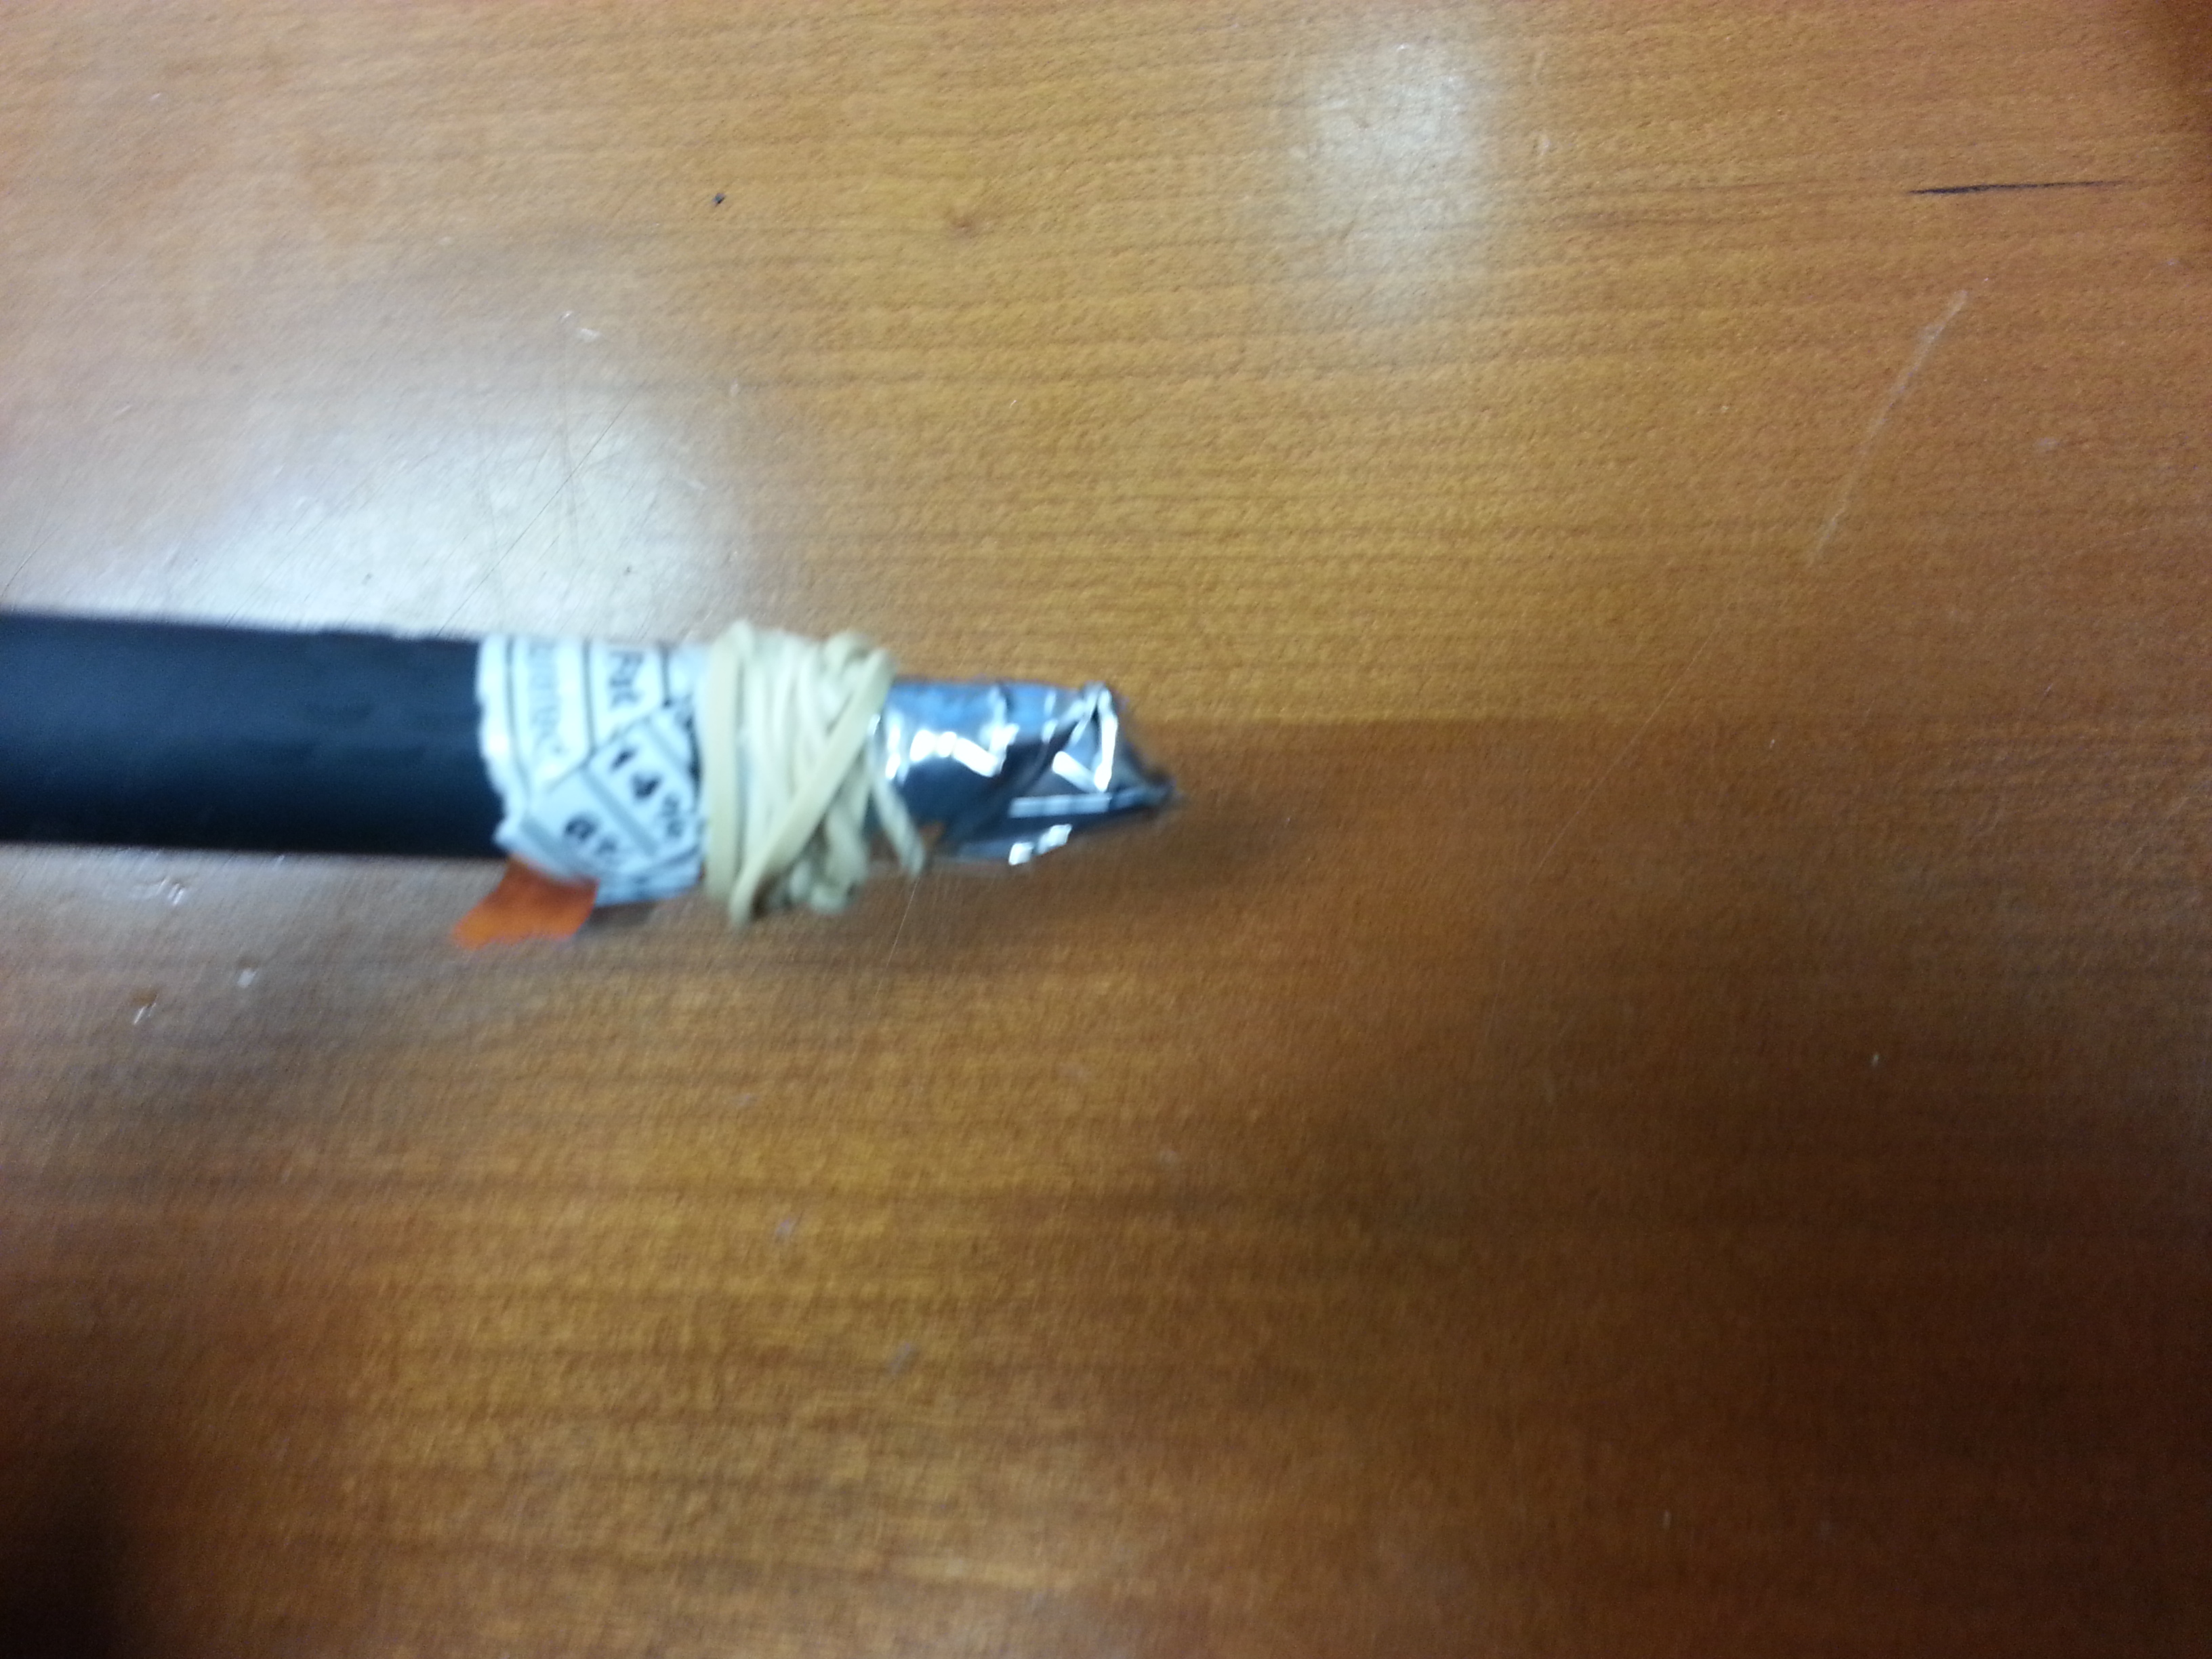 Picture of Take Rubber Band and Wrap It Around End of Pen Until Rubber Band Is Tight.